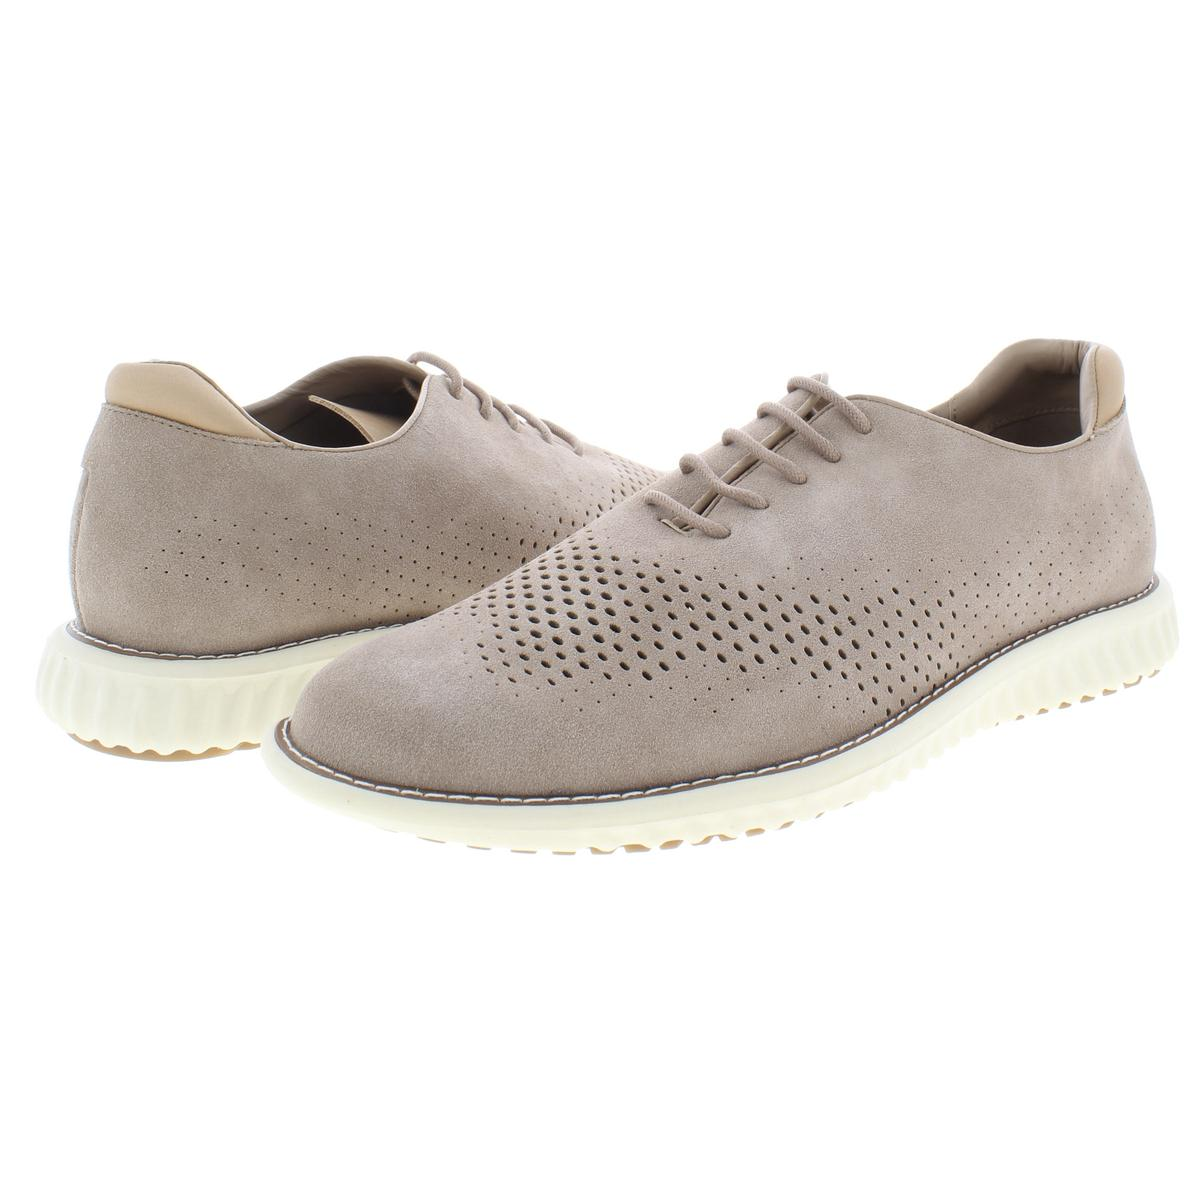 Steve-Madden-Mens-Vaelen-Suede-Perforated-Lace-Up-Oxfords-Sneakers-BHFO-9910 thumbnail 14